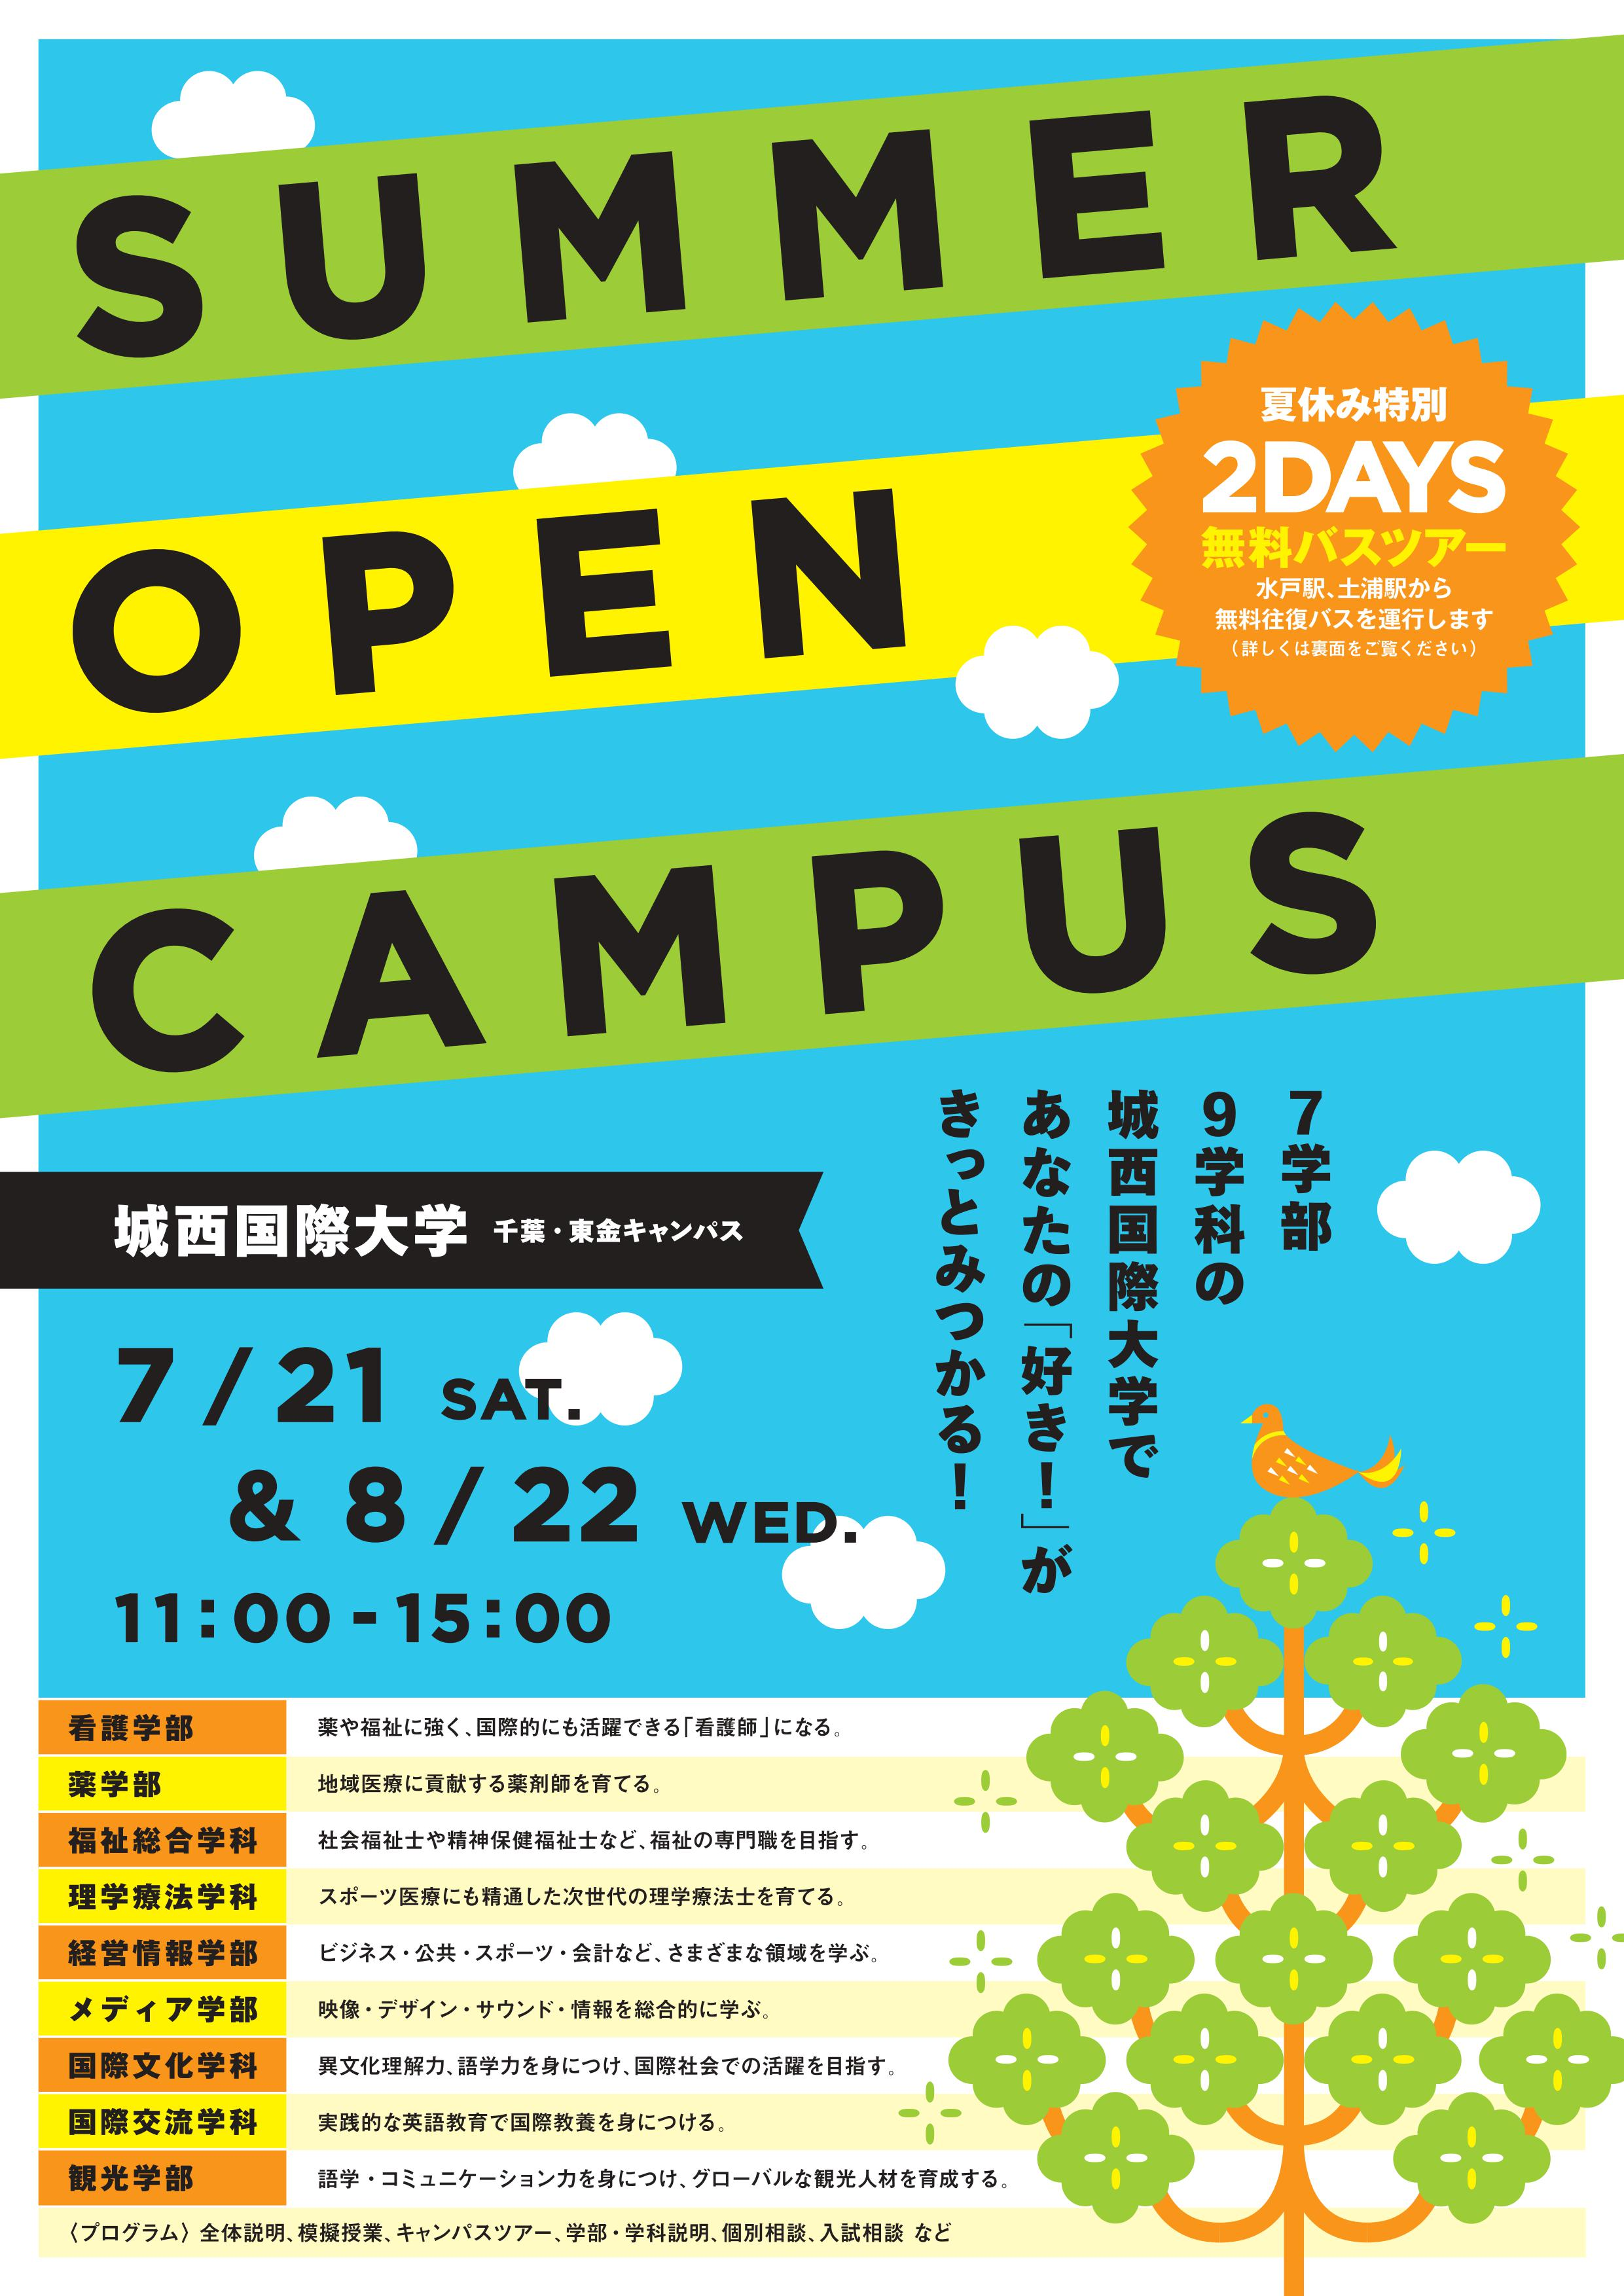 城西国際大学 SUMMER OPEN CAMPUS